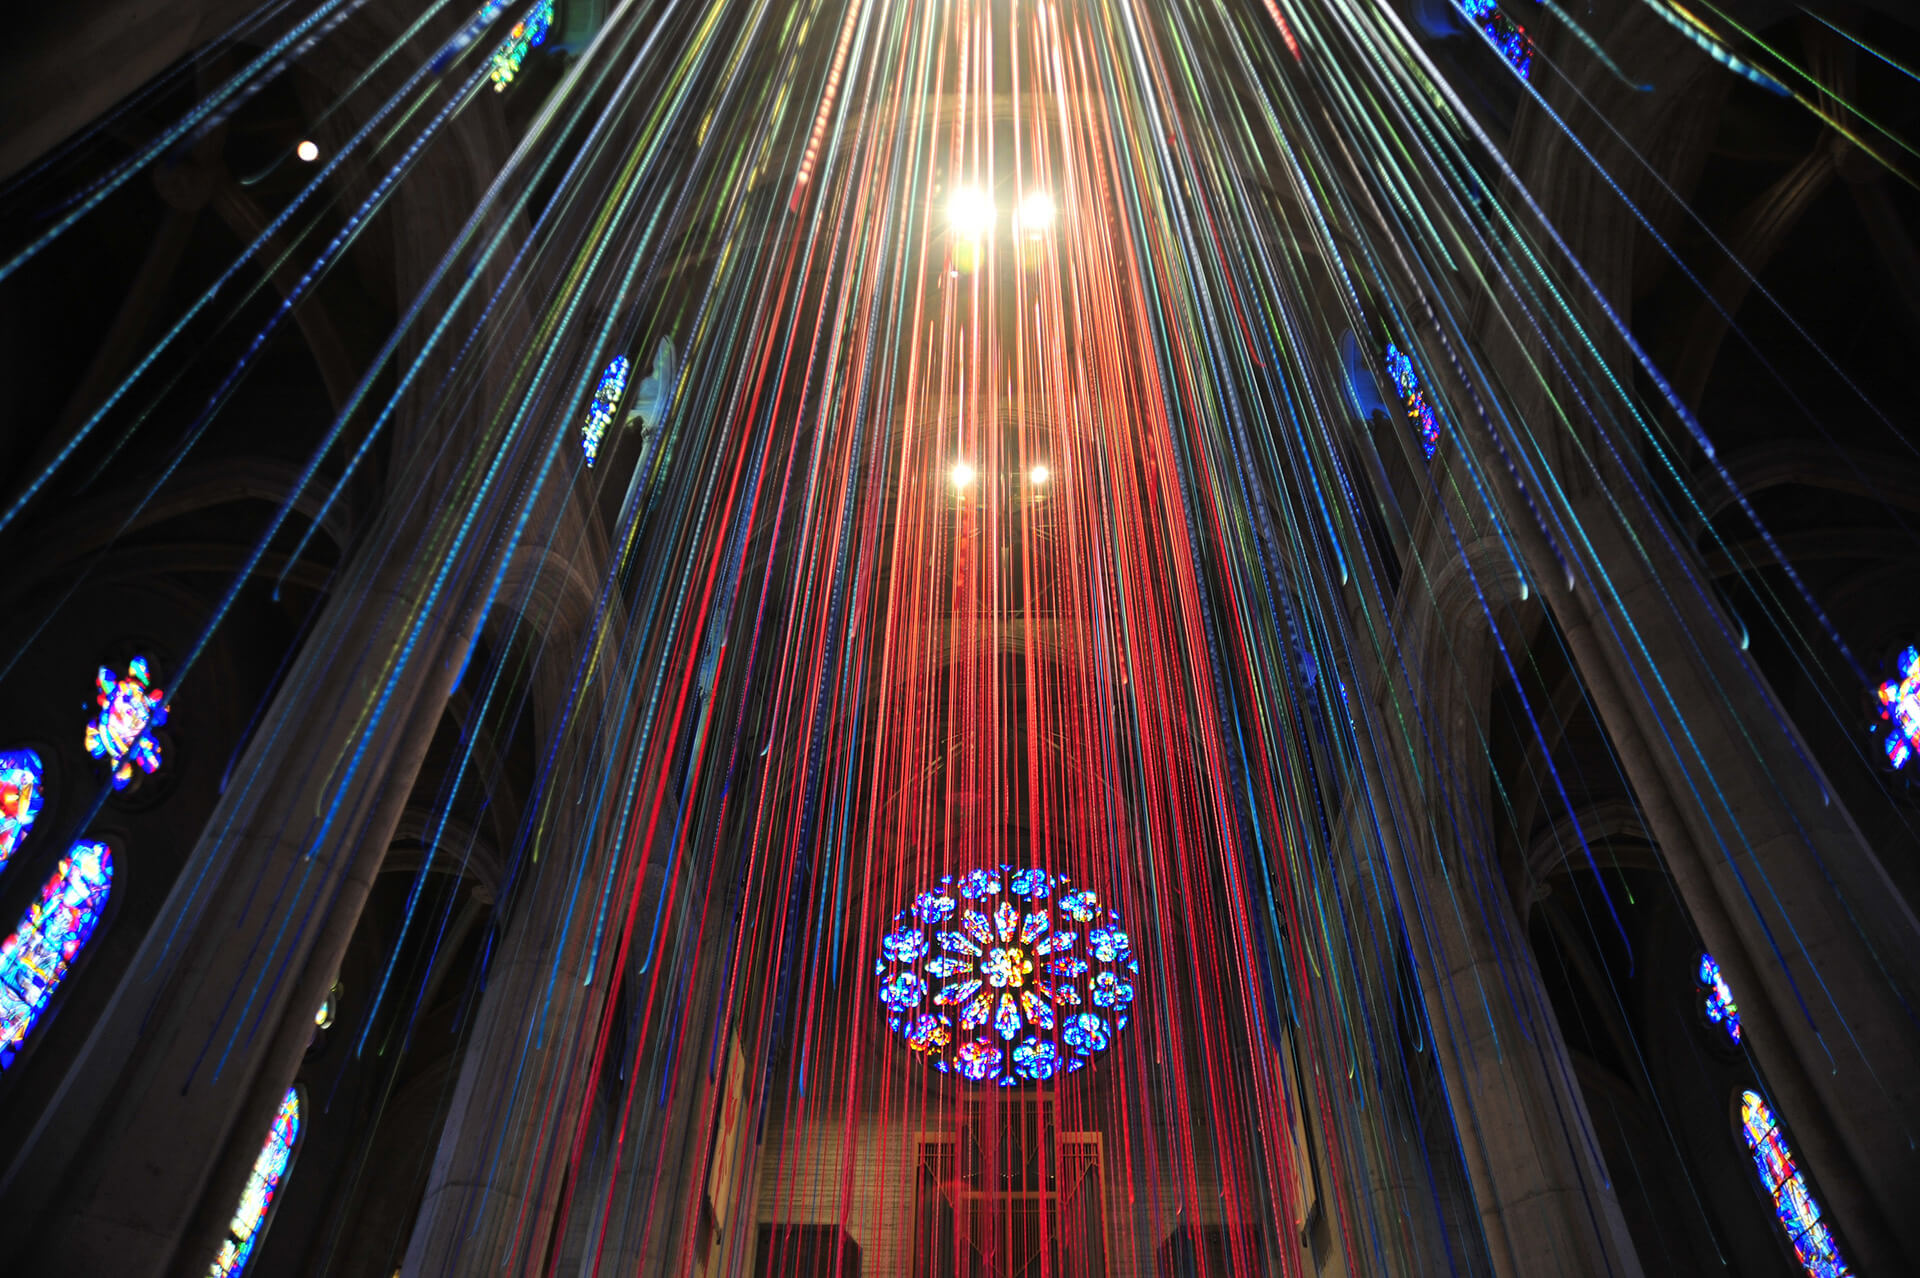 Anne Patterson, 'Graced with Light', Grace Cathedral, SF, 2013 | Graced With Light | Anne Patterson| STIRworld